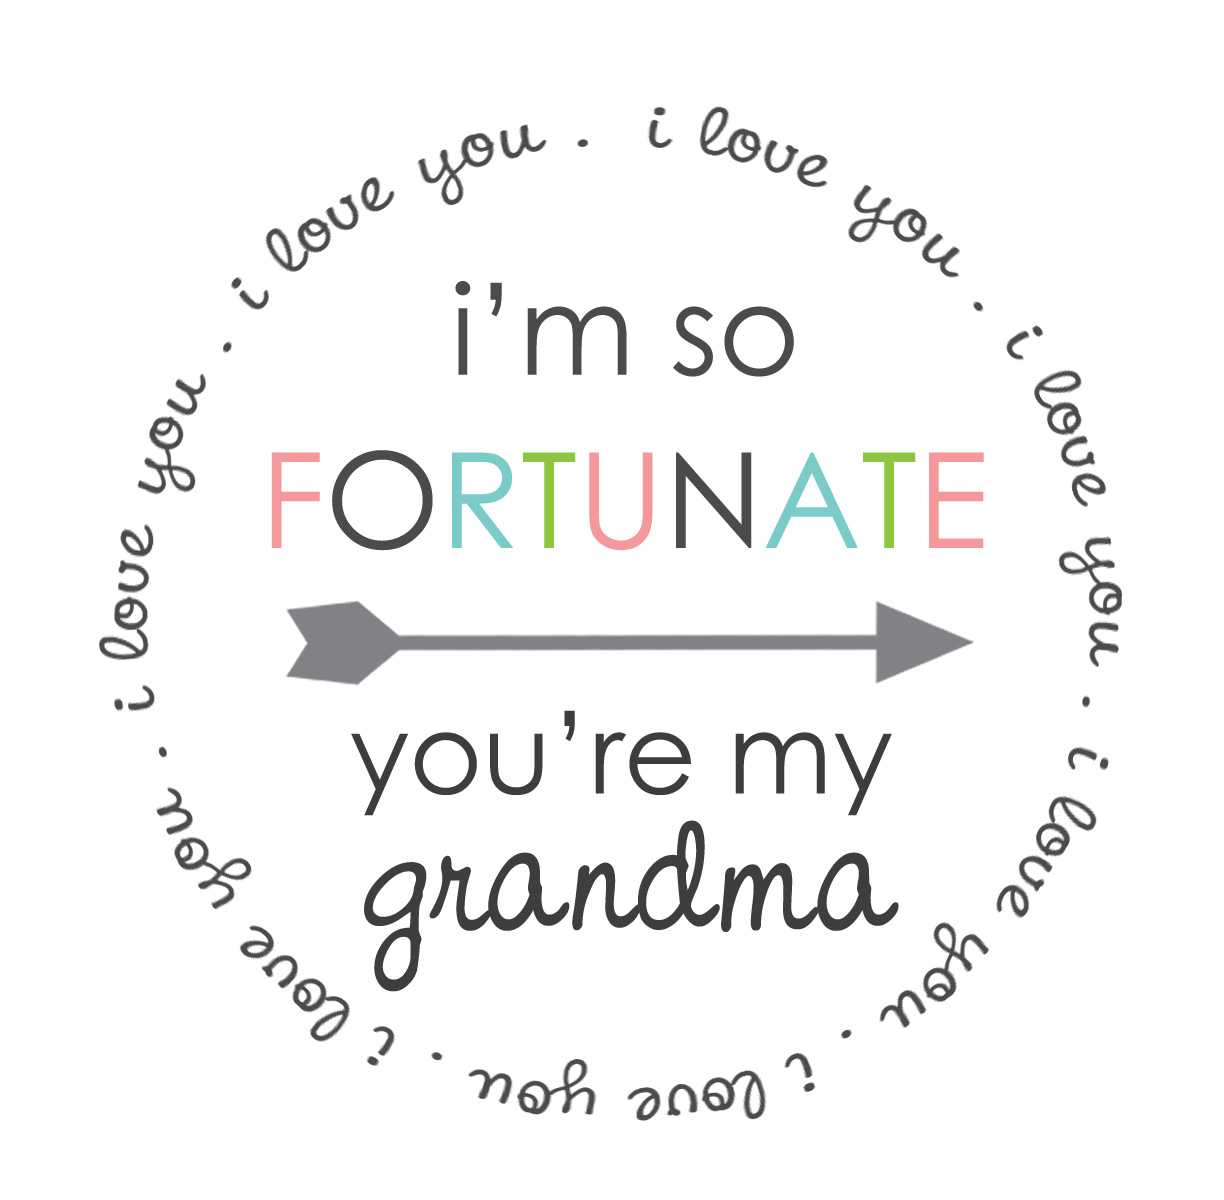 birthday cards for grandma free printable ; cookie-gift-tags-simplykierstecom-fortune-cookie-gift-tags-simplykierstecom